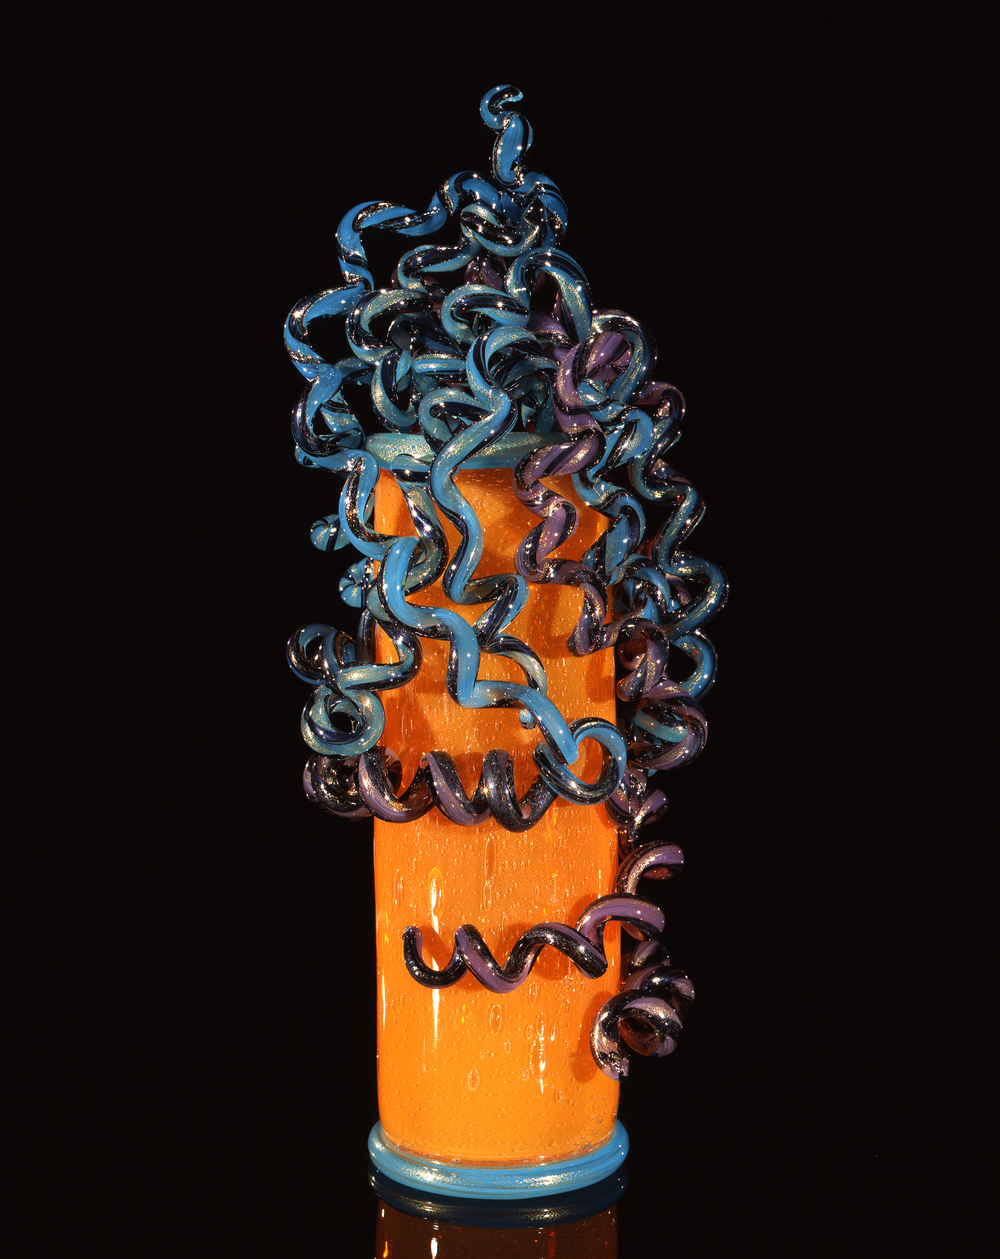 Dale Chihuly,  Mandarin Orange Piccolo Venetian with Teal and Violet Coils  (1997, glass, 14 x 6 x 5 inches)